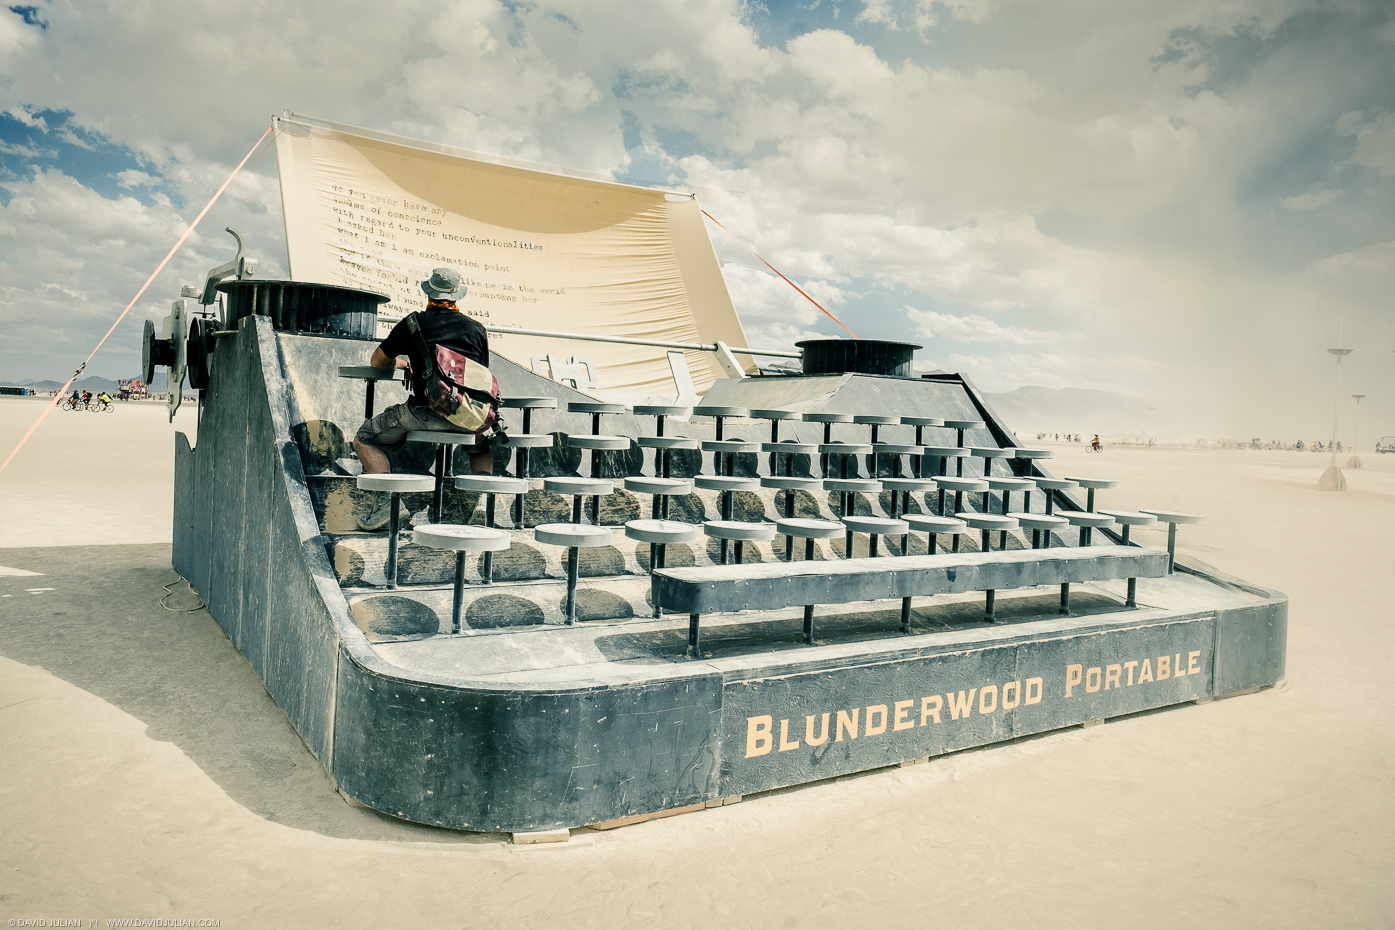 18Burning Man 2015-0405-Blunderwood Portable-APF